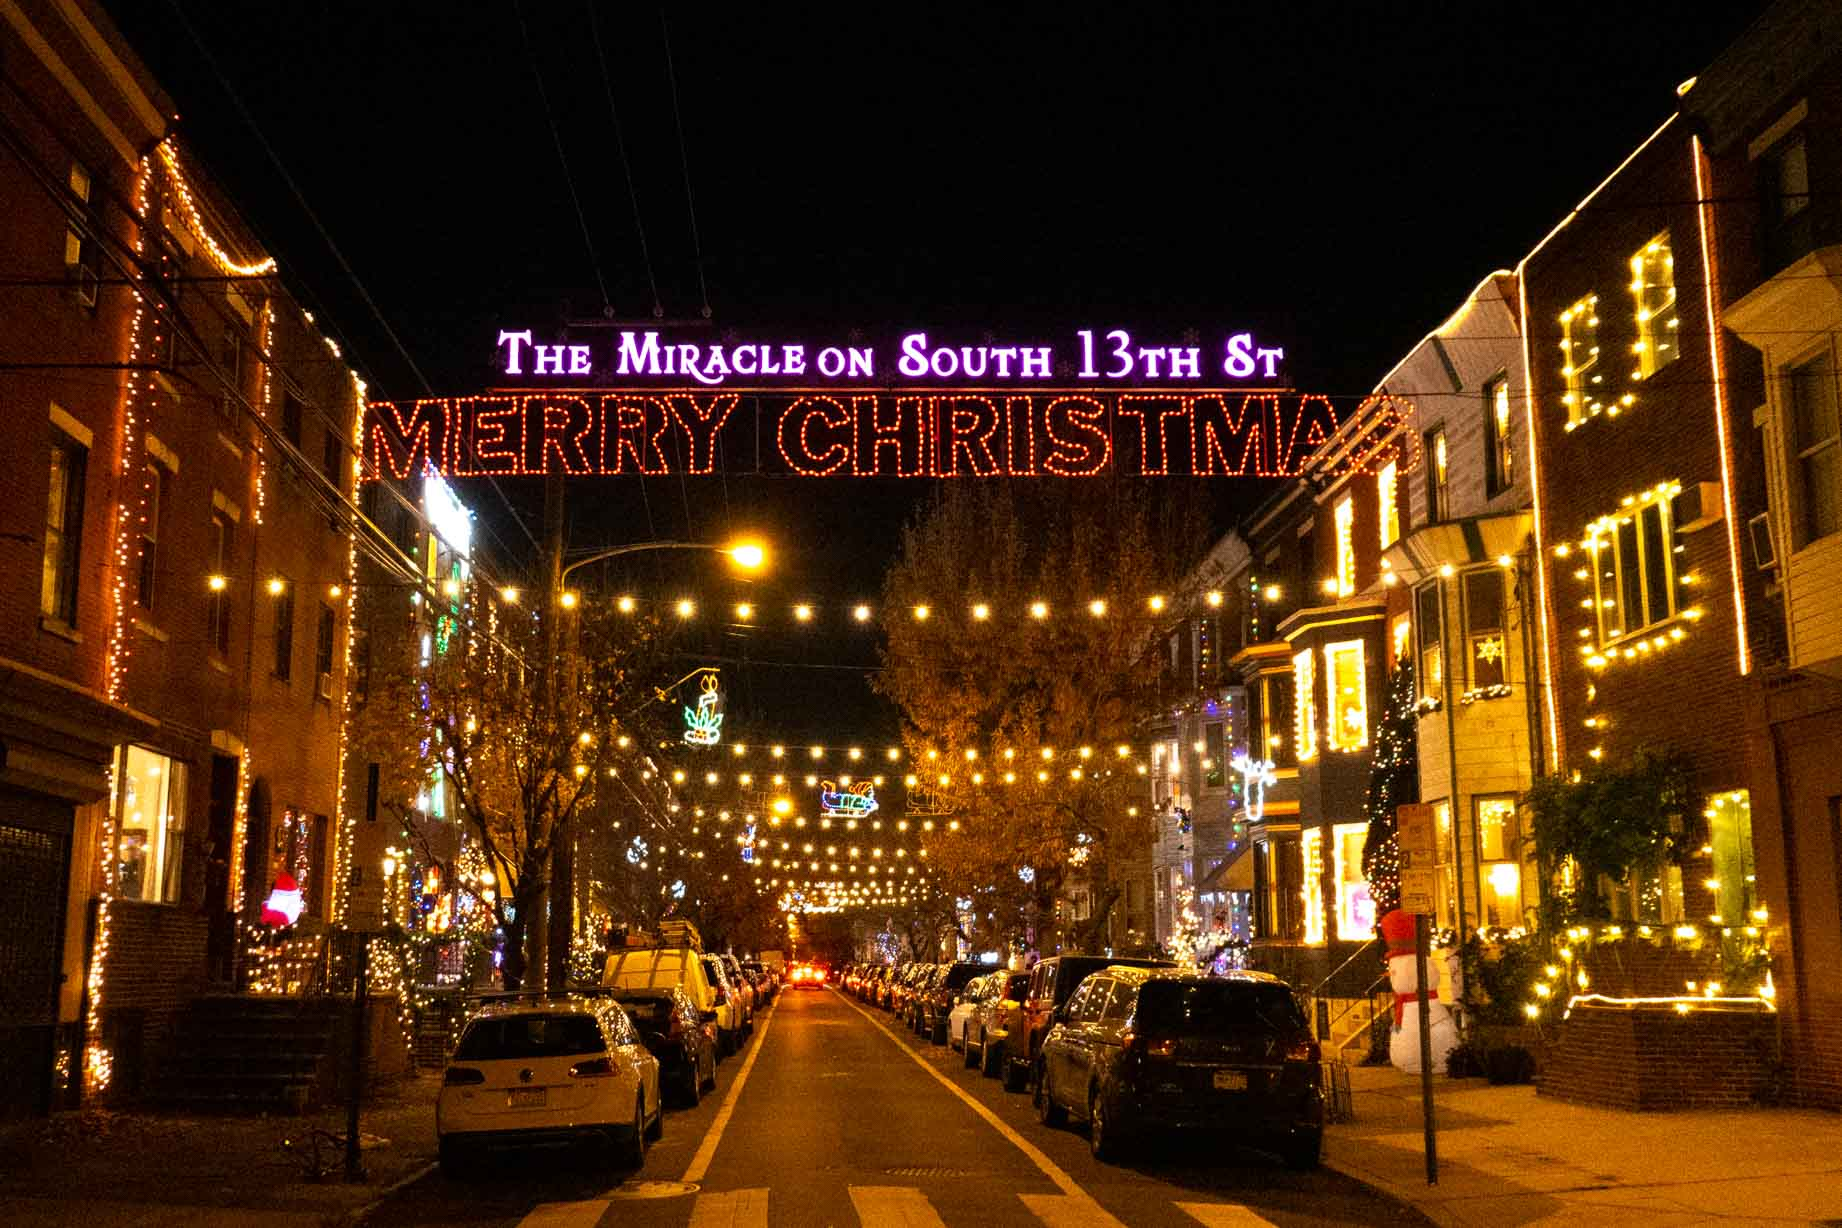 Illuminated sign: The Miracle on South 13th St, Merry Christmas